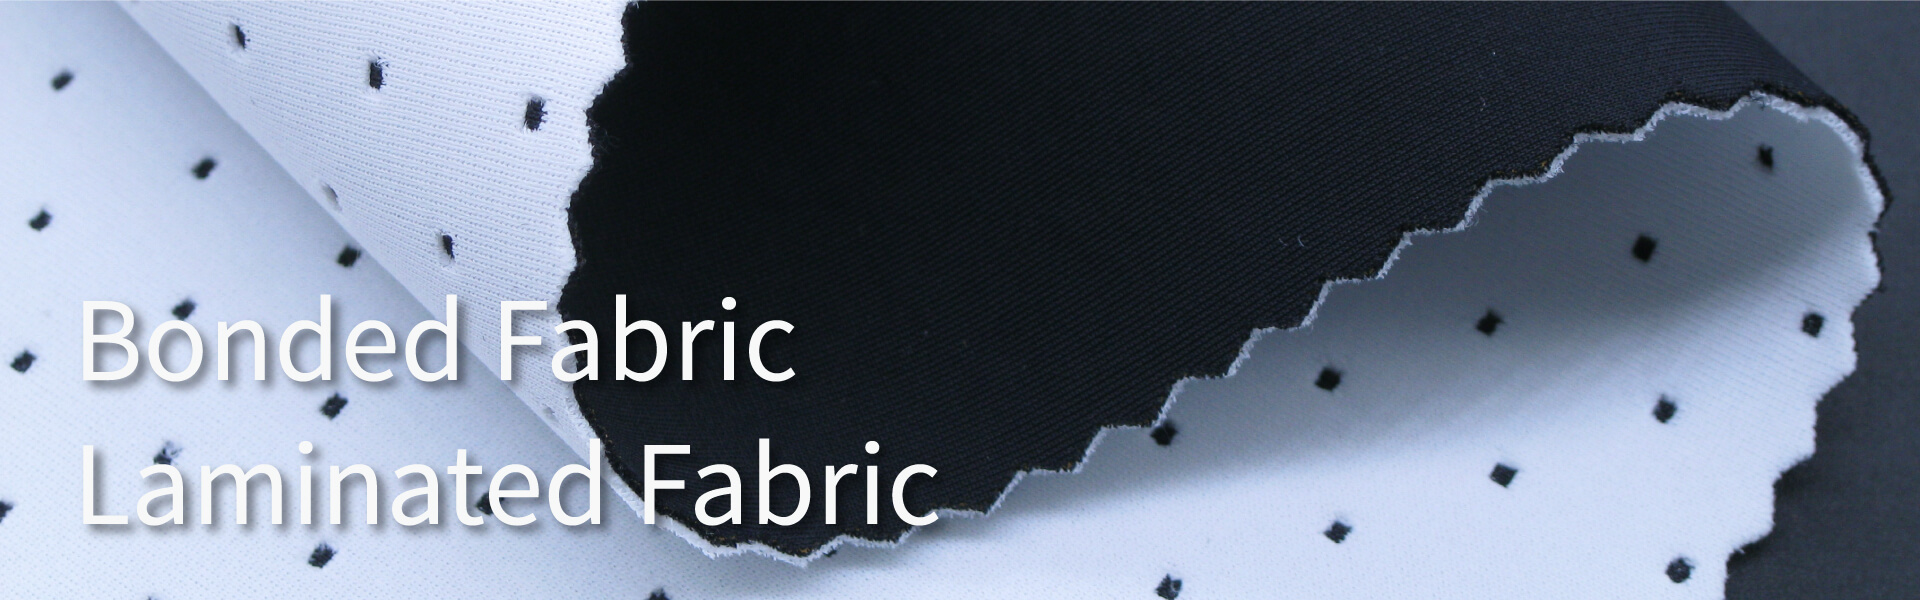 laminated-fabric-bonded-fabric